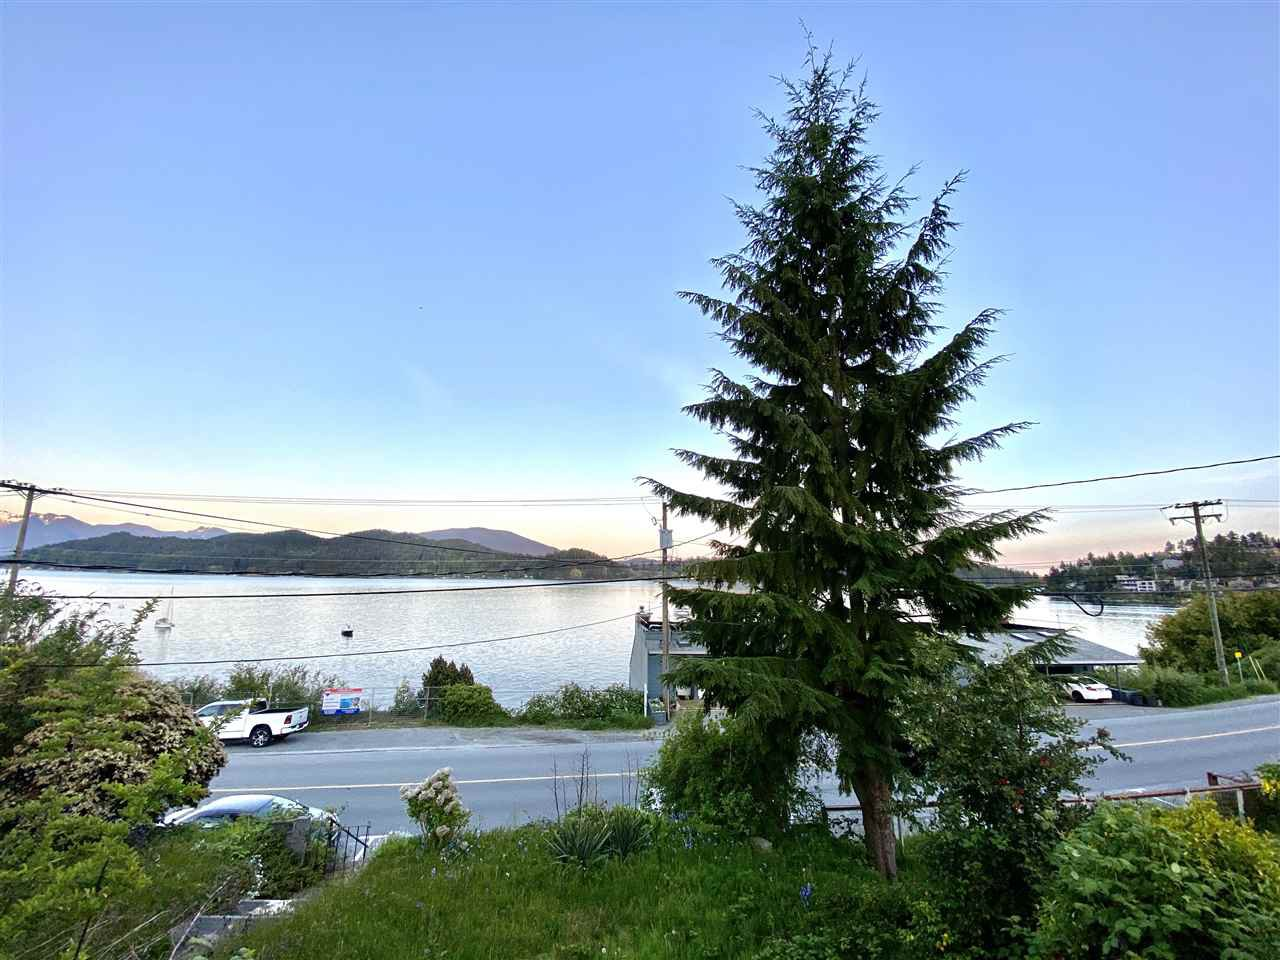 Main Photo: 517 MARINE Drive in Gibsons: Gibsons & Area House for sale (Sunshine Coast)  : MLS®# R2454802